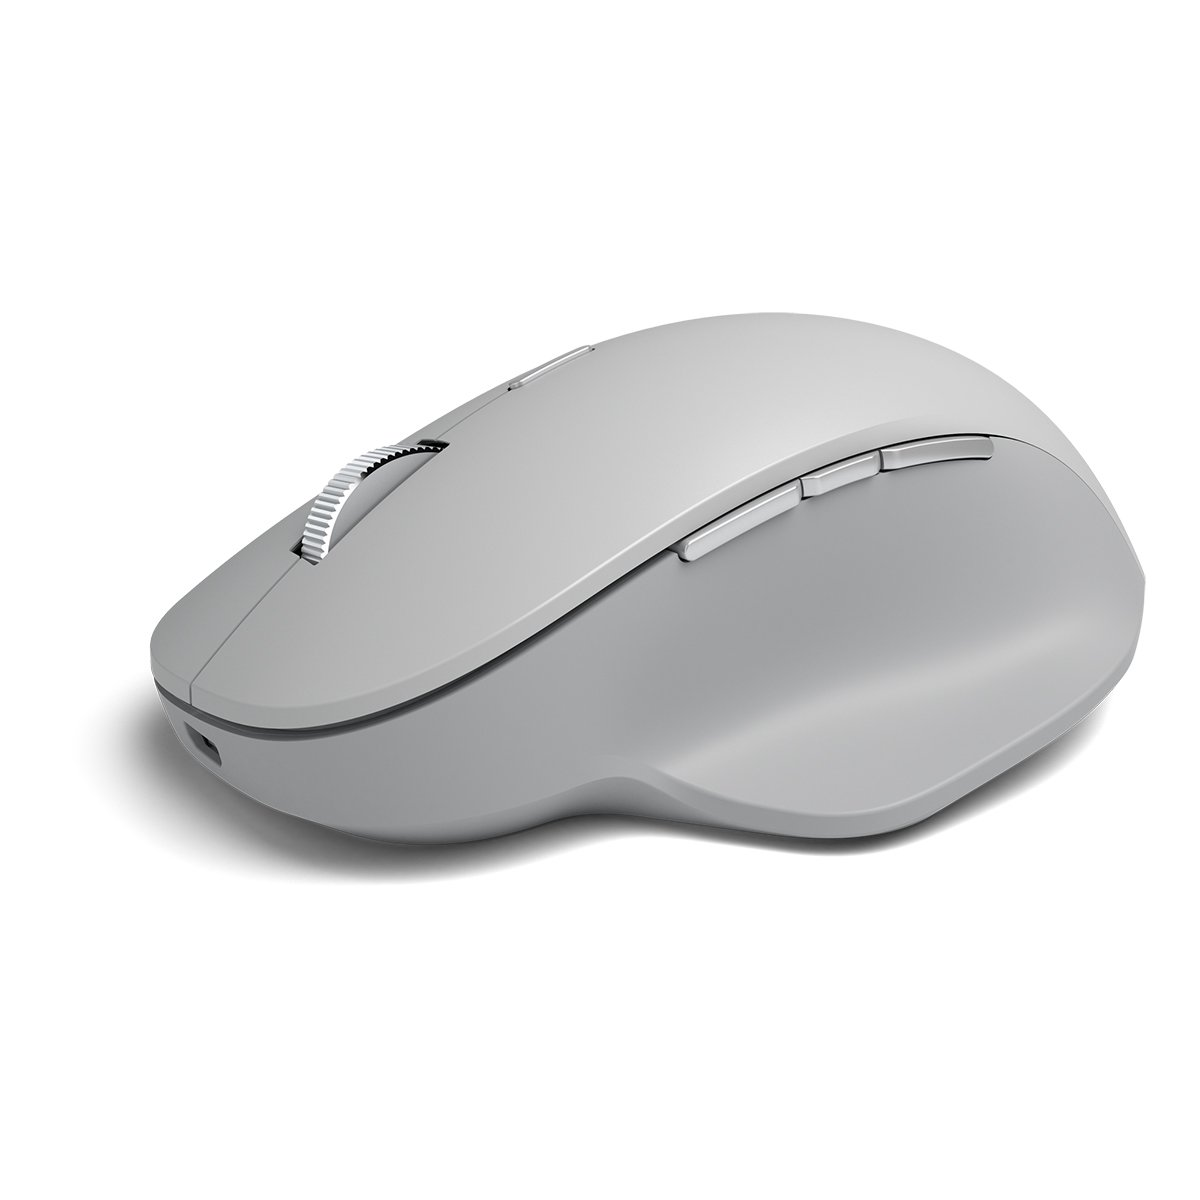 Microsoft Surface Precision Mouse, Light Grey by Microsoft